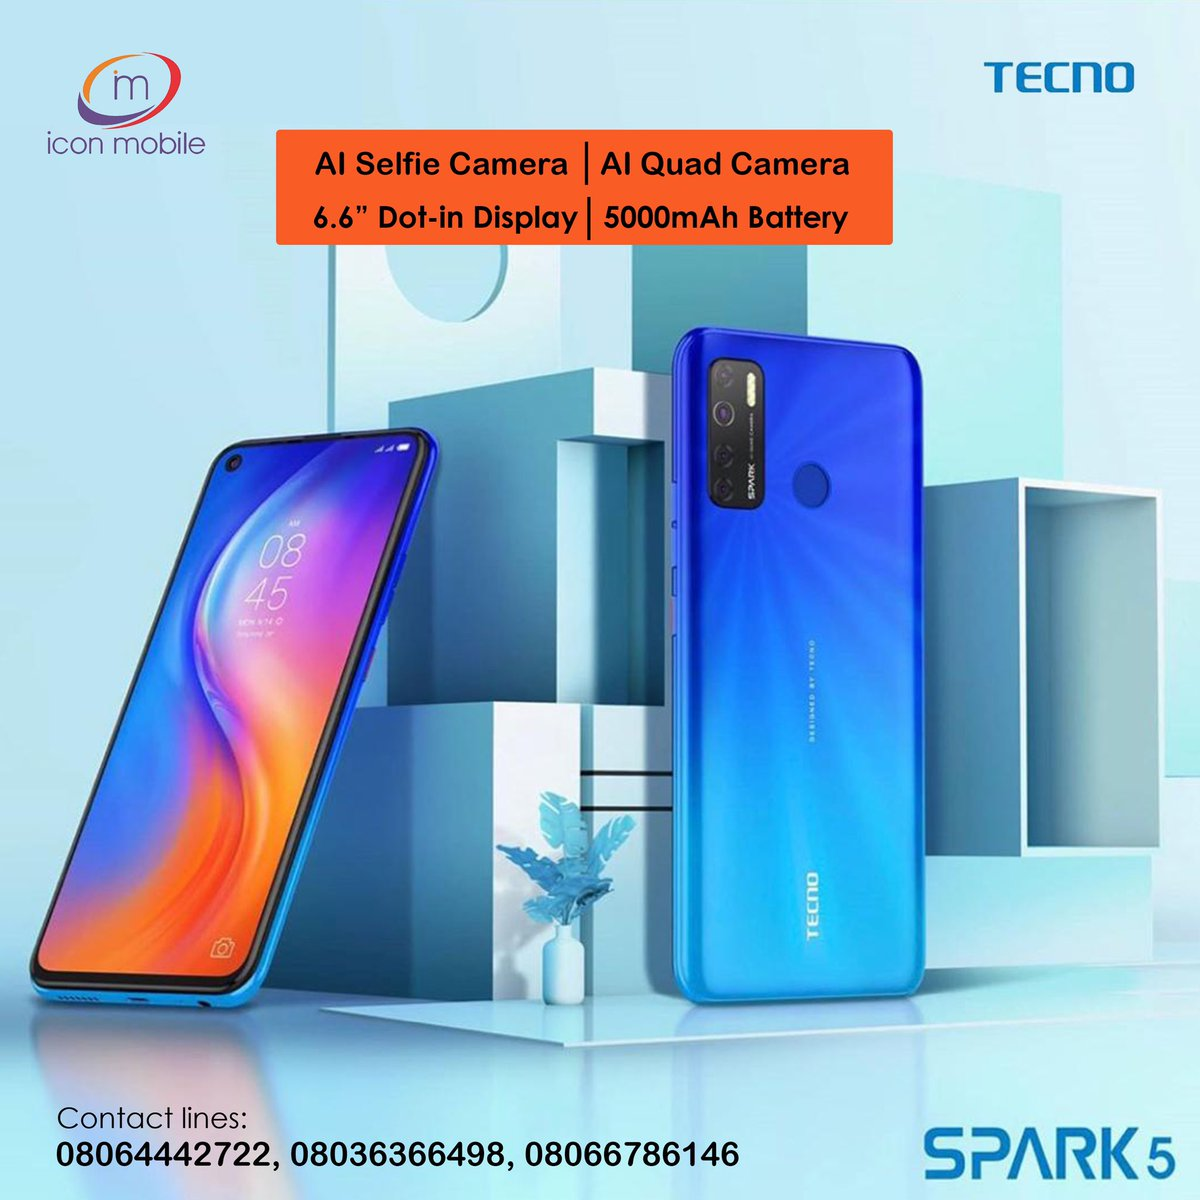 The 13MP main camera of #Spark5 gives you clear, natural and beautiful shots and in a dark environment. The quad rear flash gives brightness to your photography. - Available in all our stores - Contact lines : 08109879367, 08064442722, 08066786146 #iconmobileng #tecno https://t.co/P8DRPx2sXf